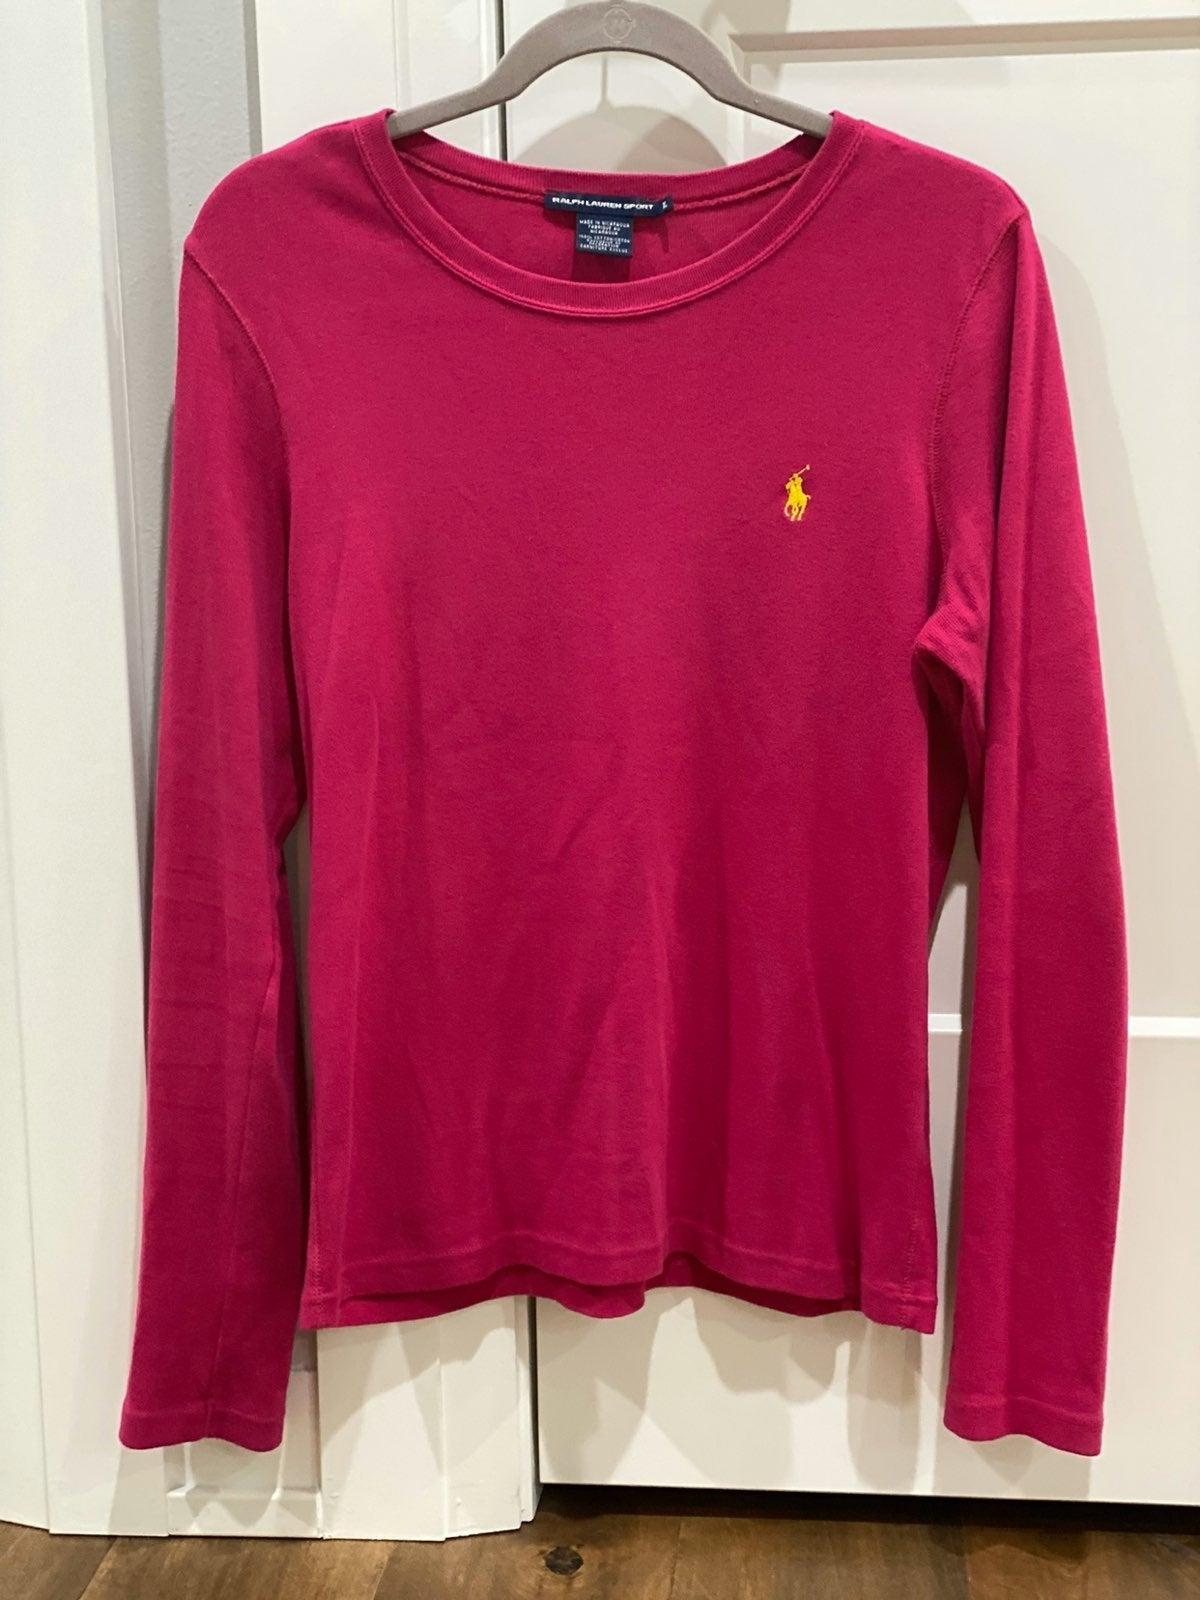 Ralph Lauren POLO Bright Pink Shirt XL